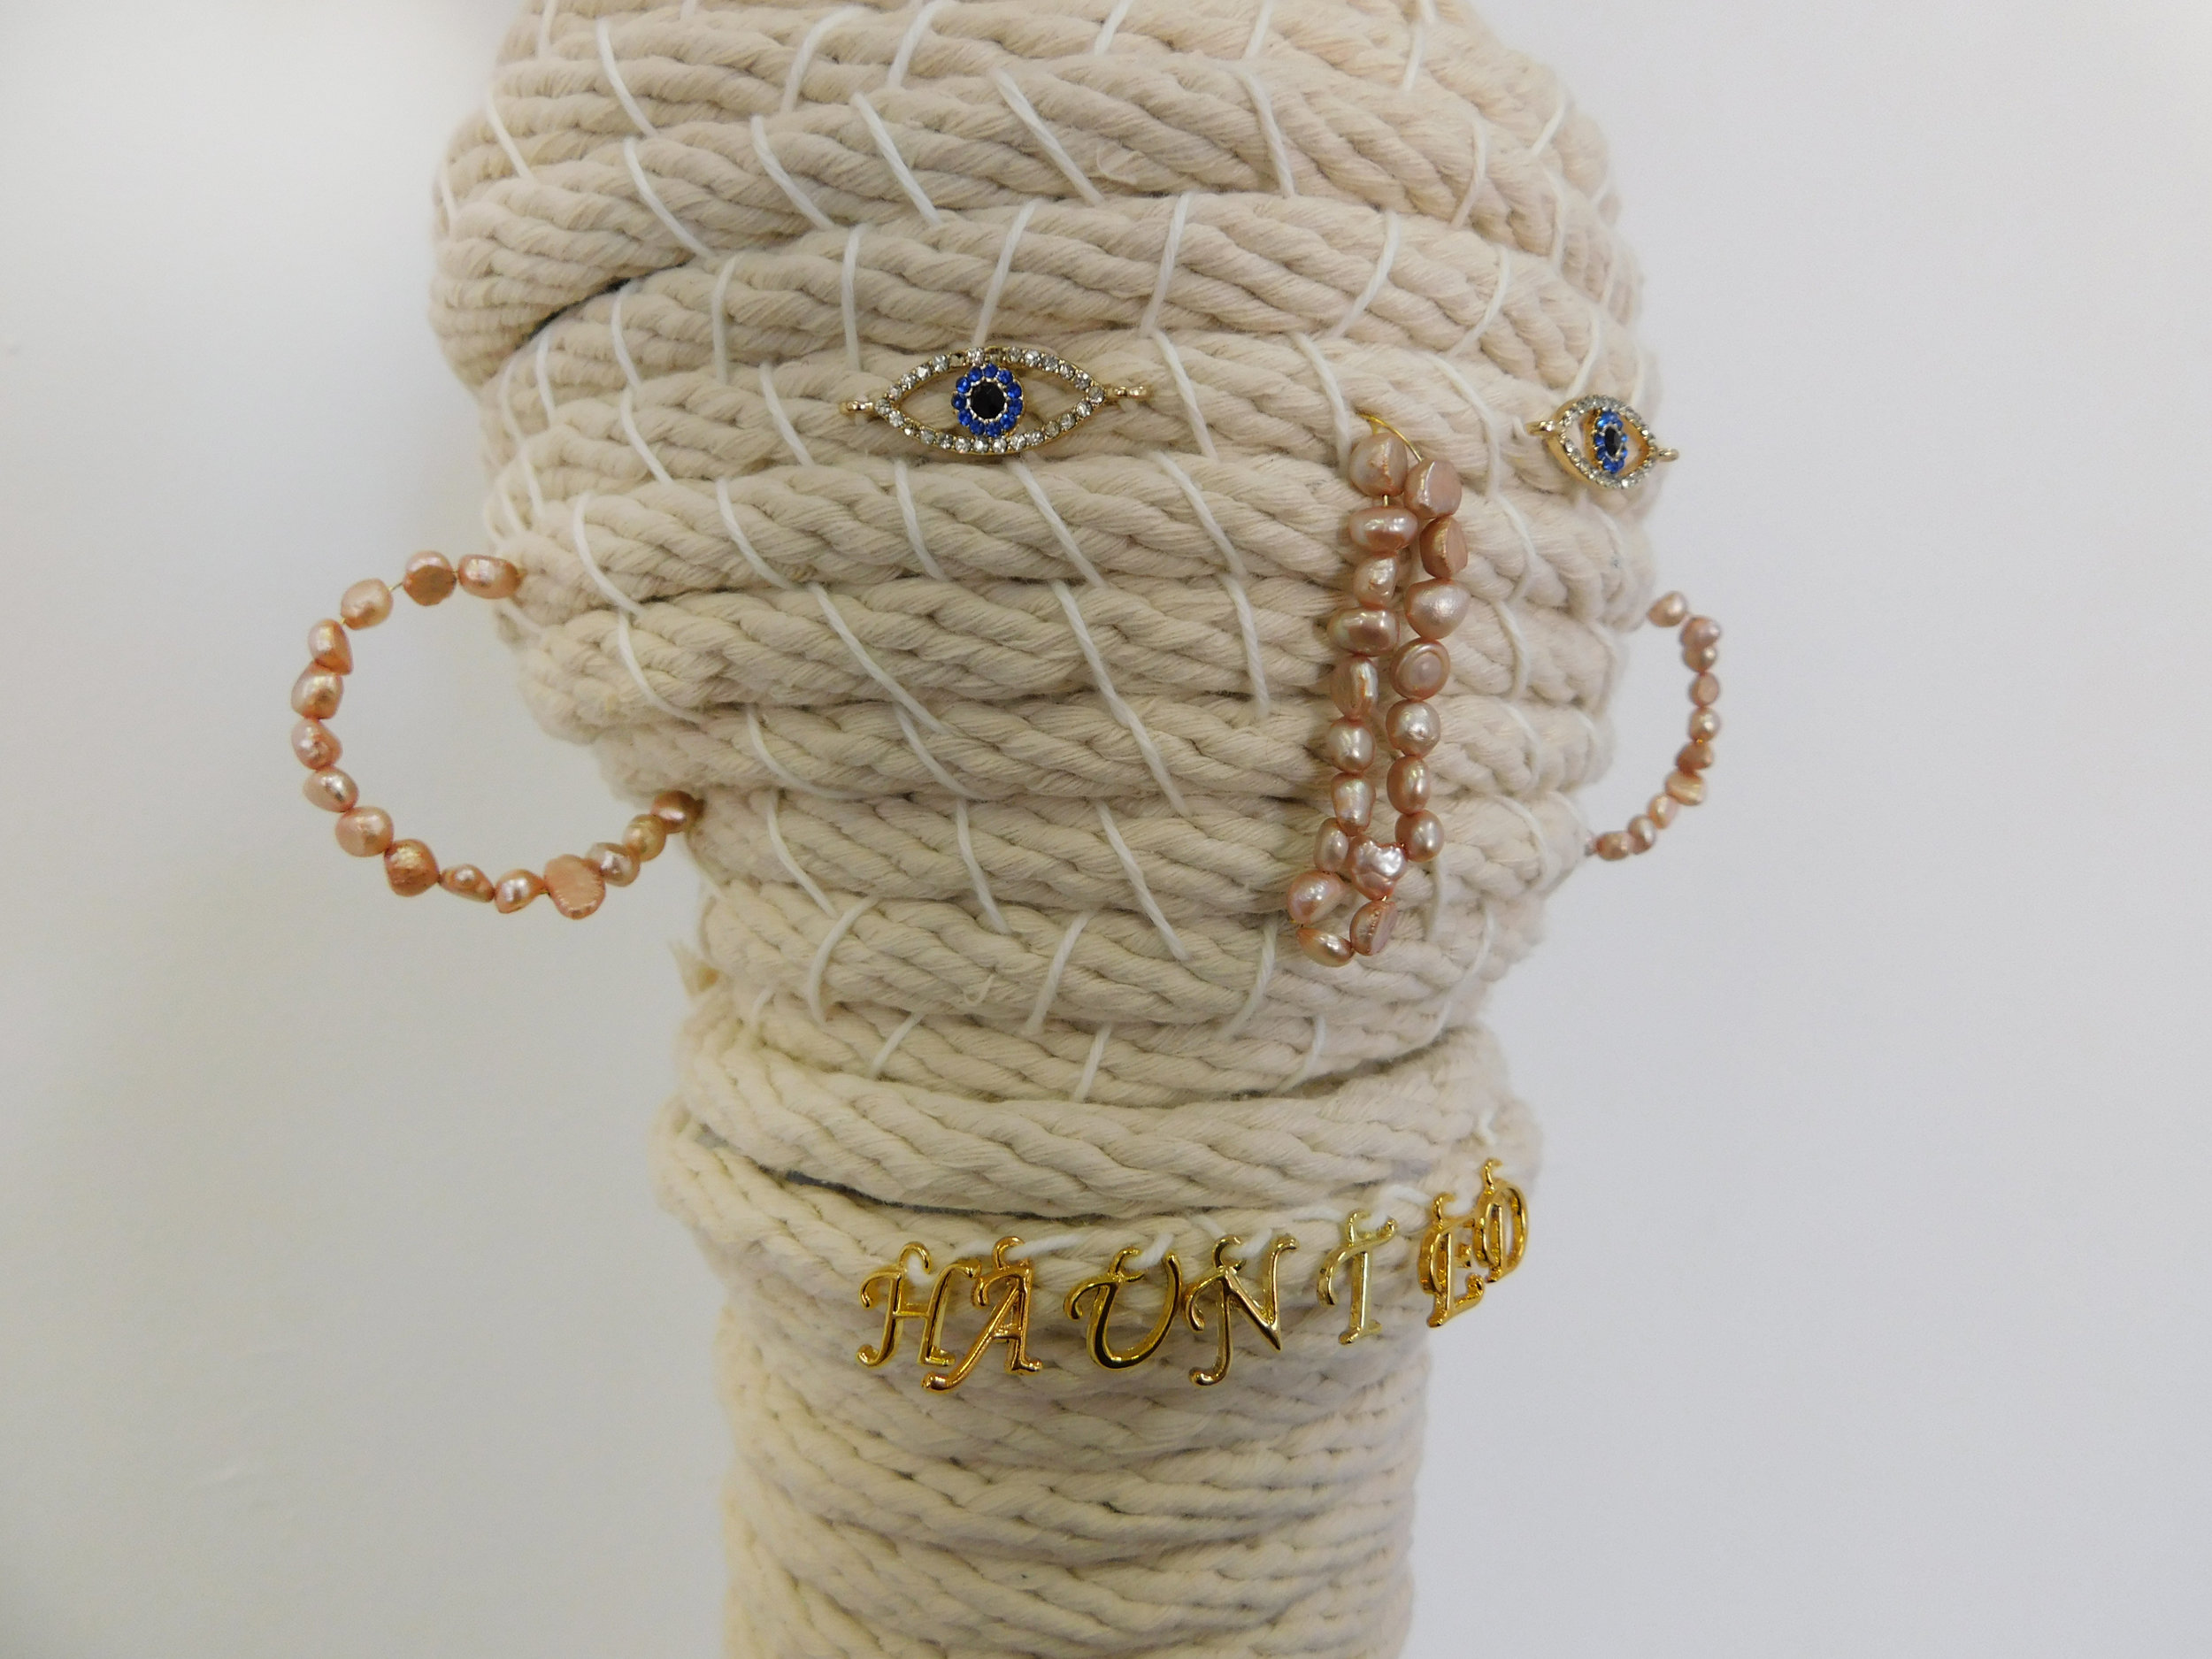 Apparition (Jesse) , (Detail). 2019 Cotton sash cord, metal charms, fresh water pearls, glass